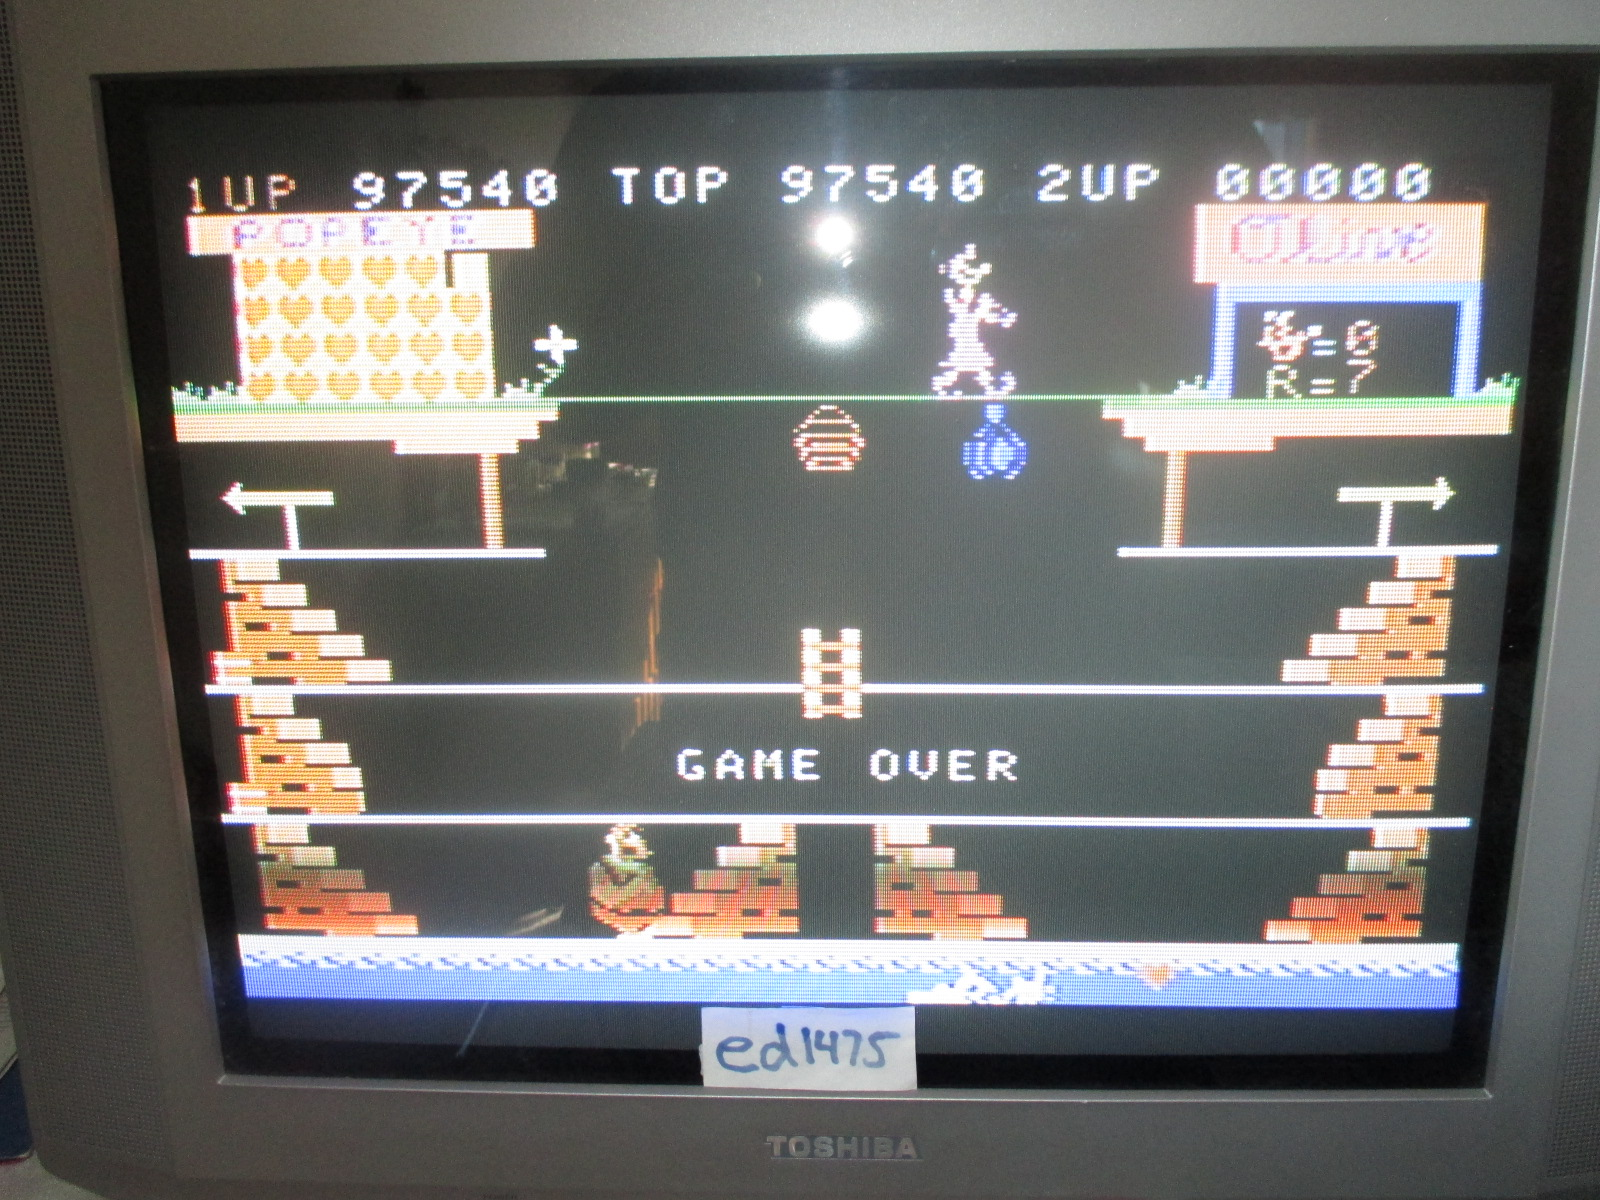 ed1475: Popeye: Skill 1 (Colecovision) 97,540 points on 2014-06-29 17:46:49